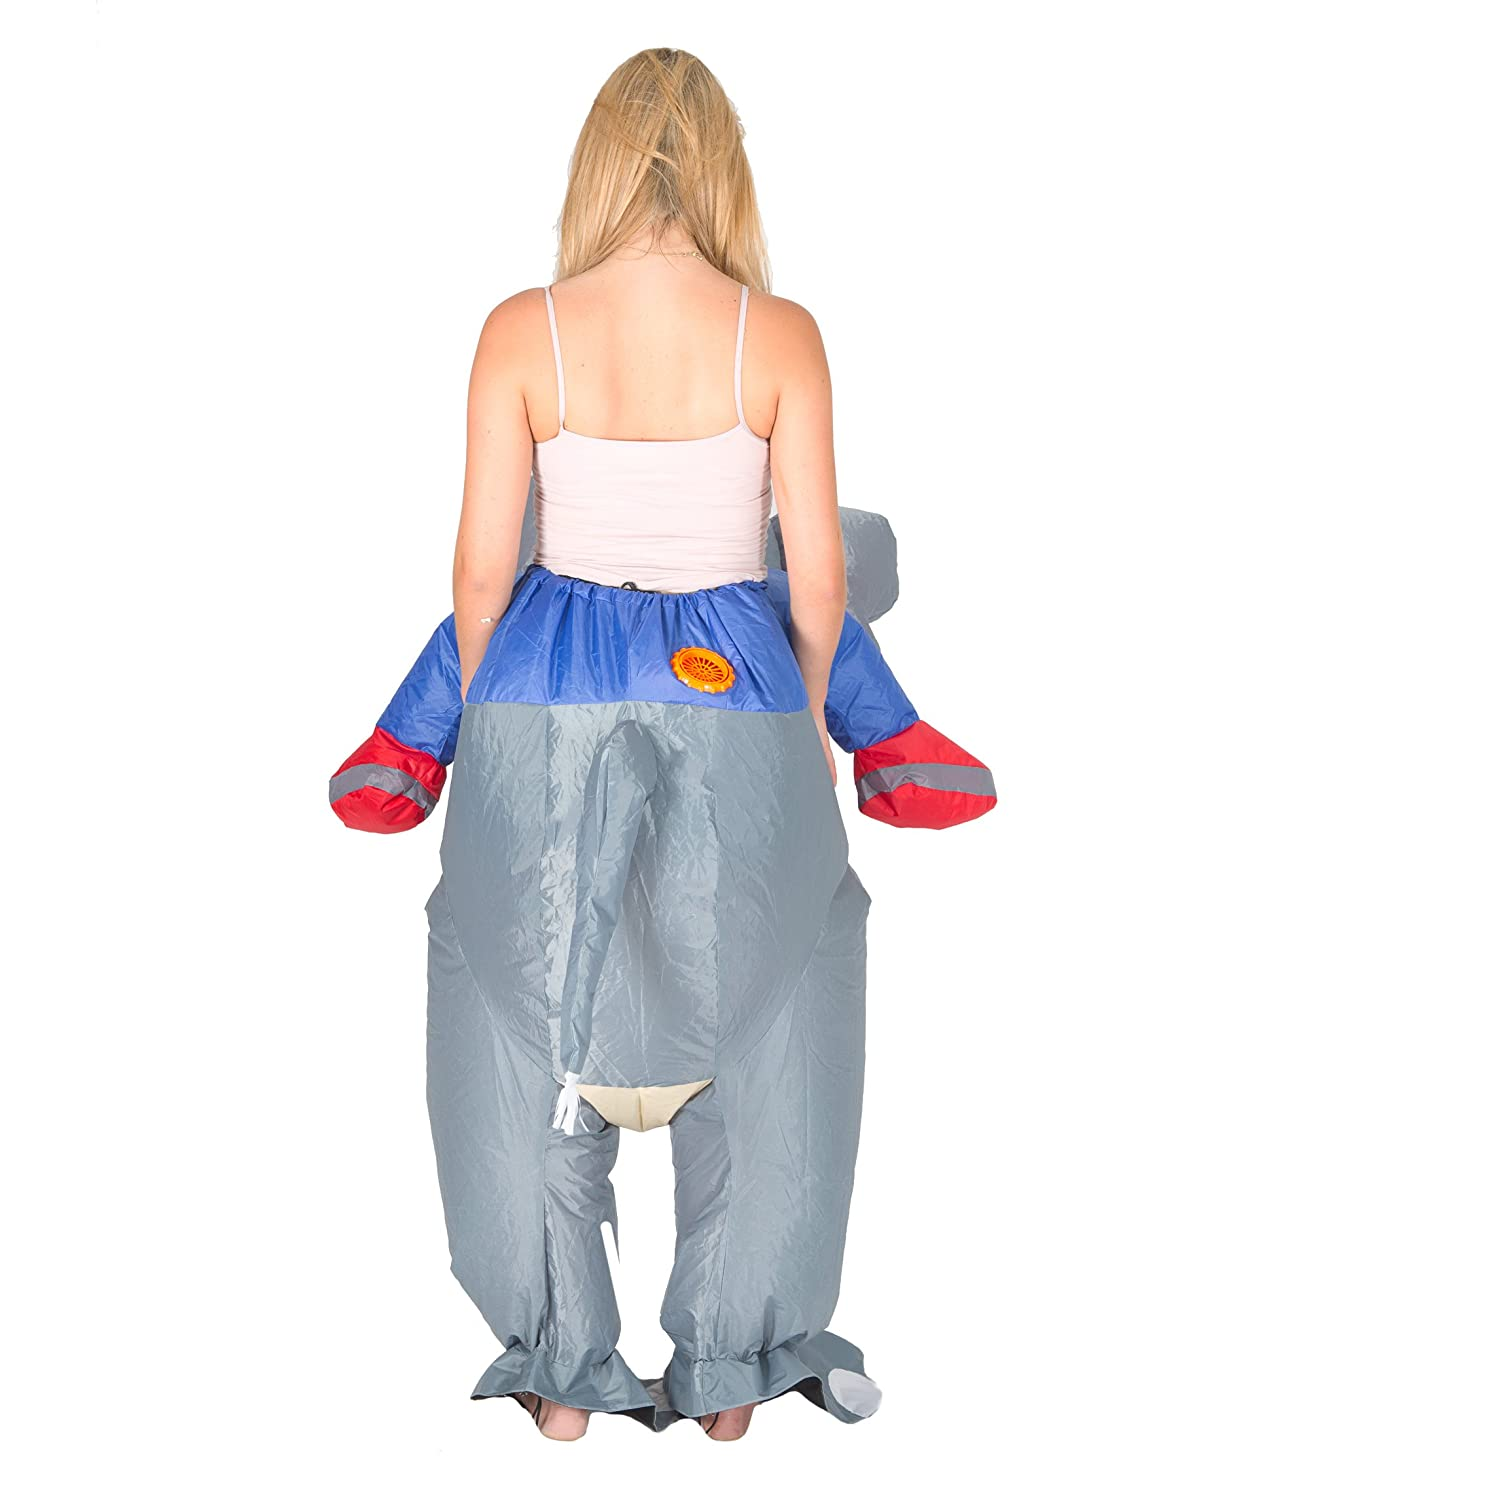 Adults Bodysocks Inflatable Elephant Fancy Dress Costume One size fits most